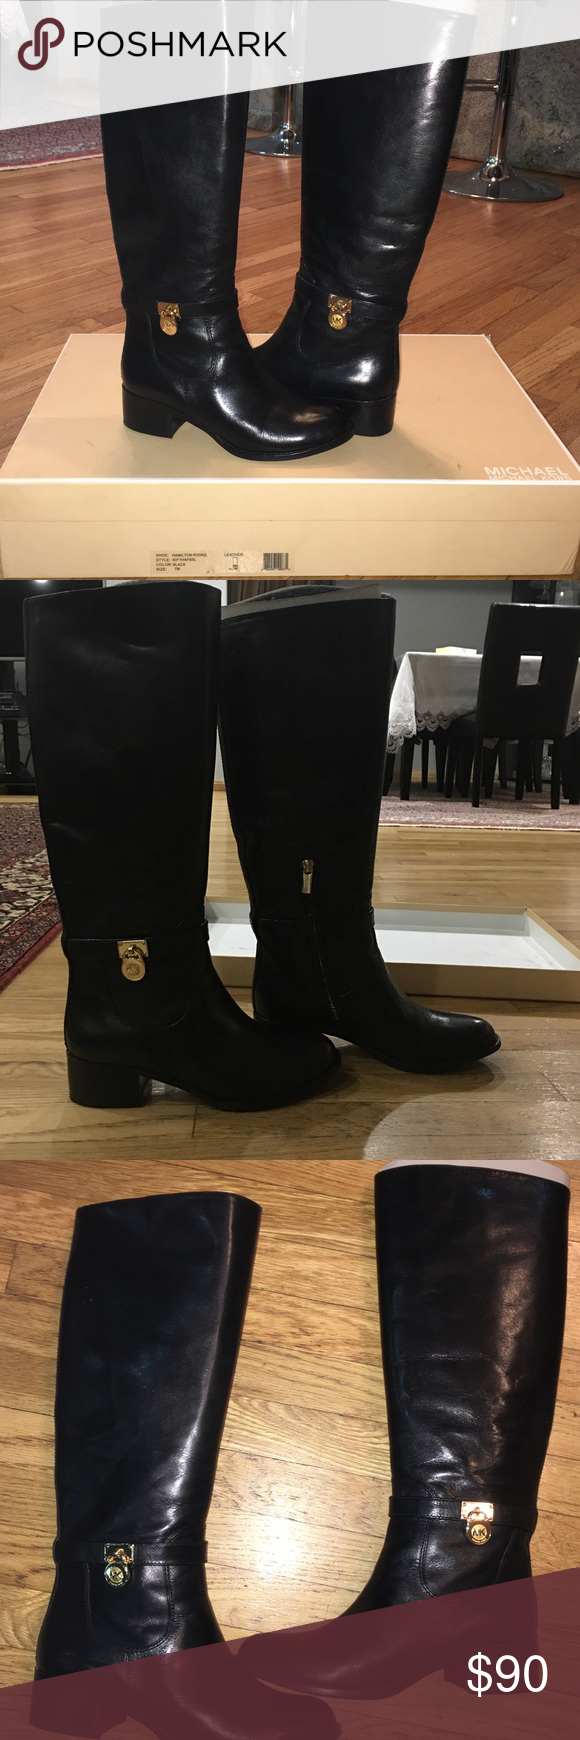 ff8c98a8f3900 Micheal kors hamilton boots MICHAEL KORS Hamilton Tall Leather Riding Boot  Boots BLACK GOLD 7 M 100% Authentic Smooth leather. Golden color hardware.